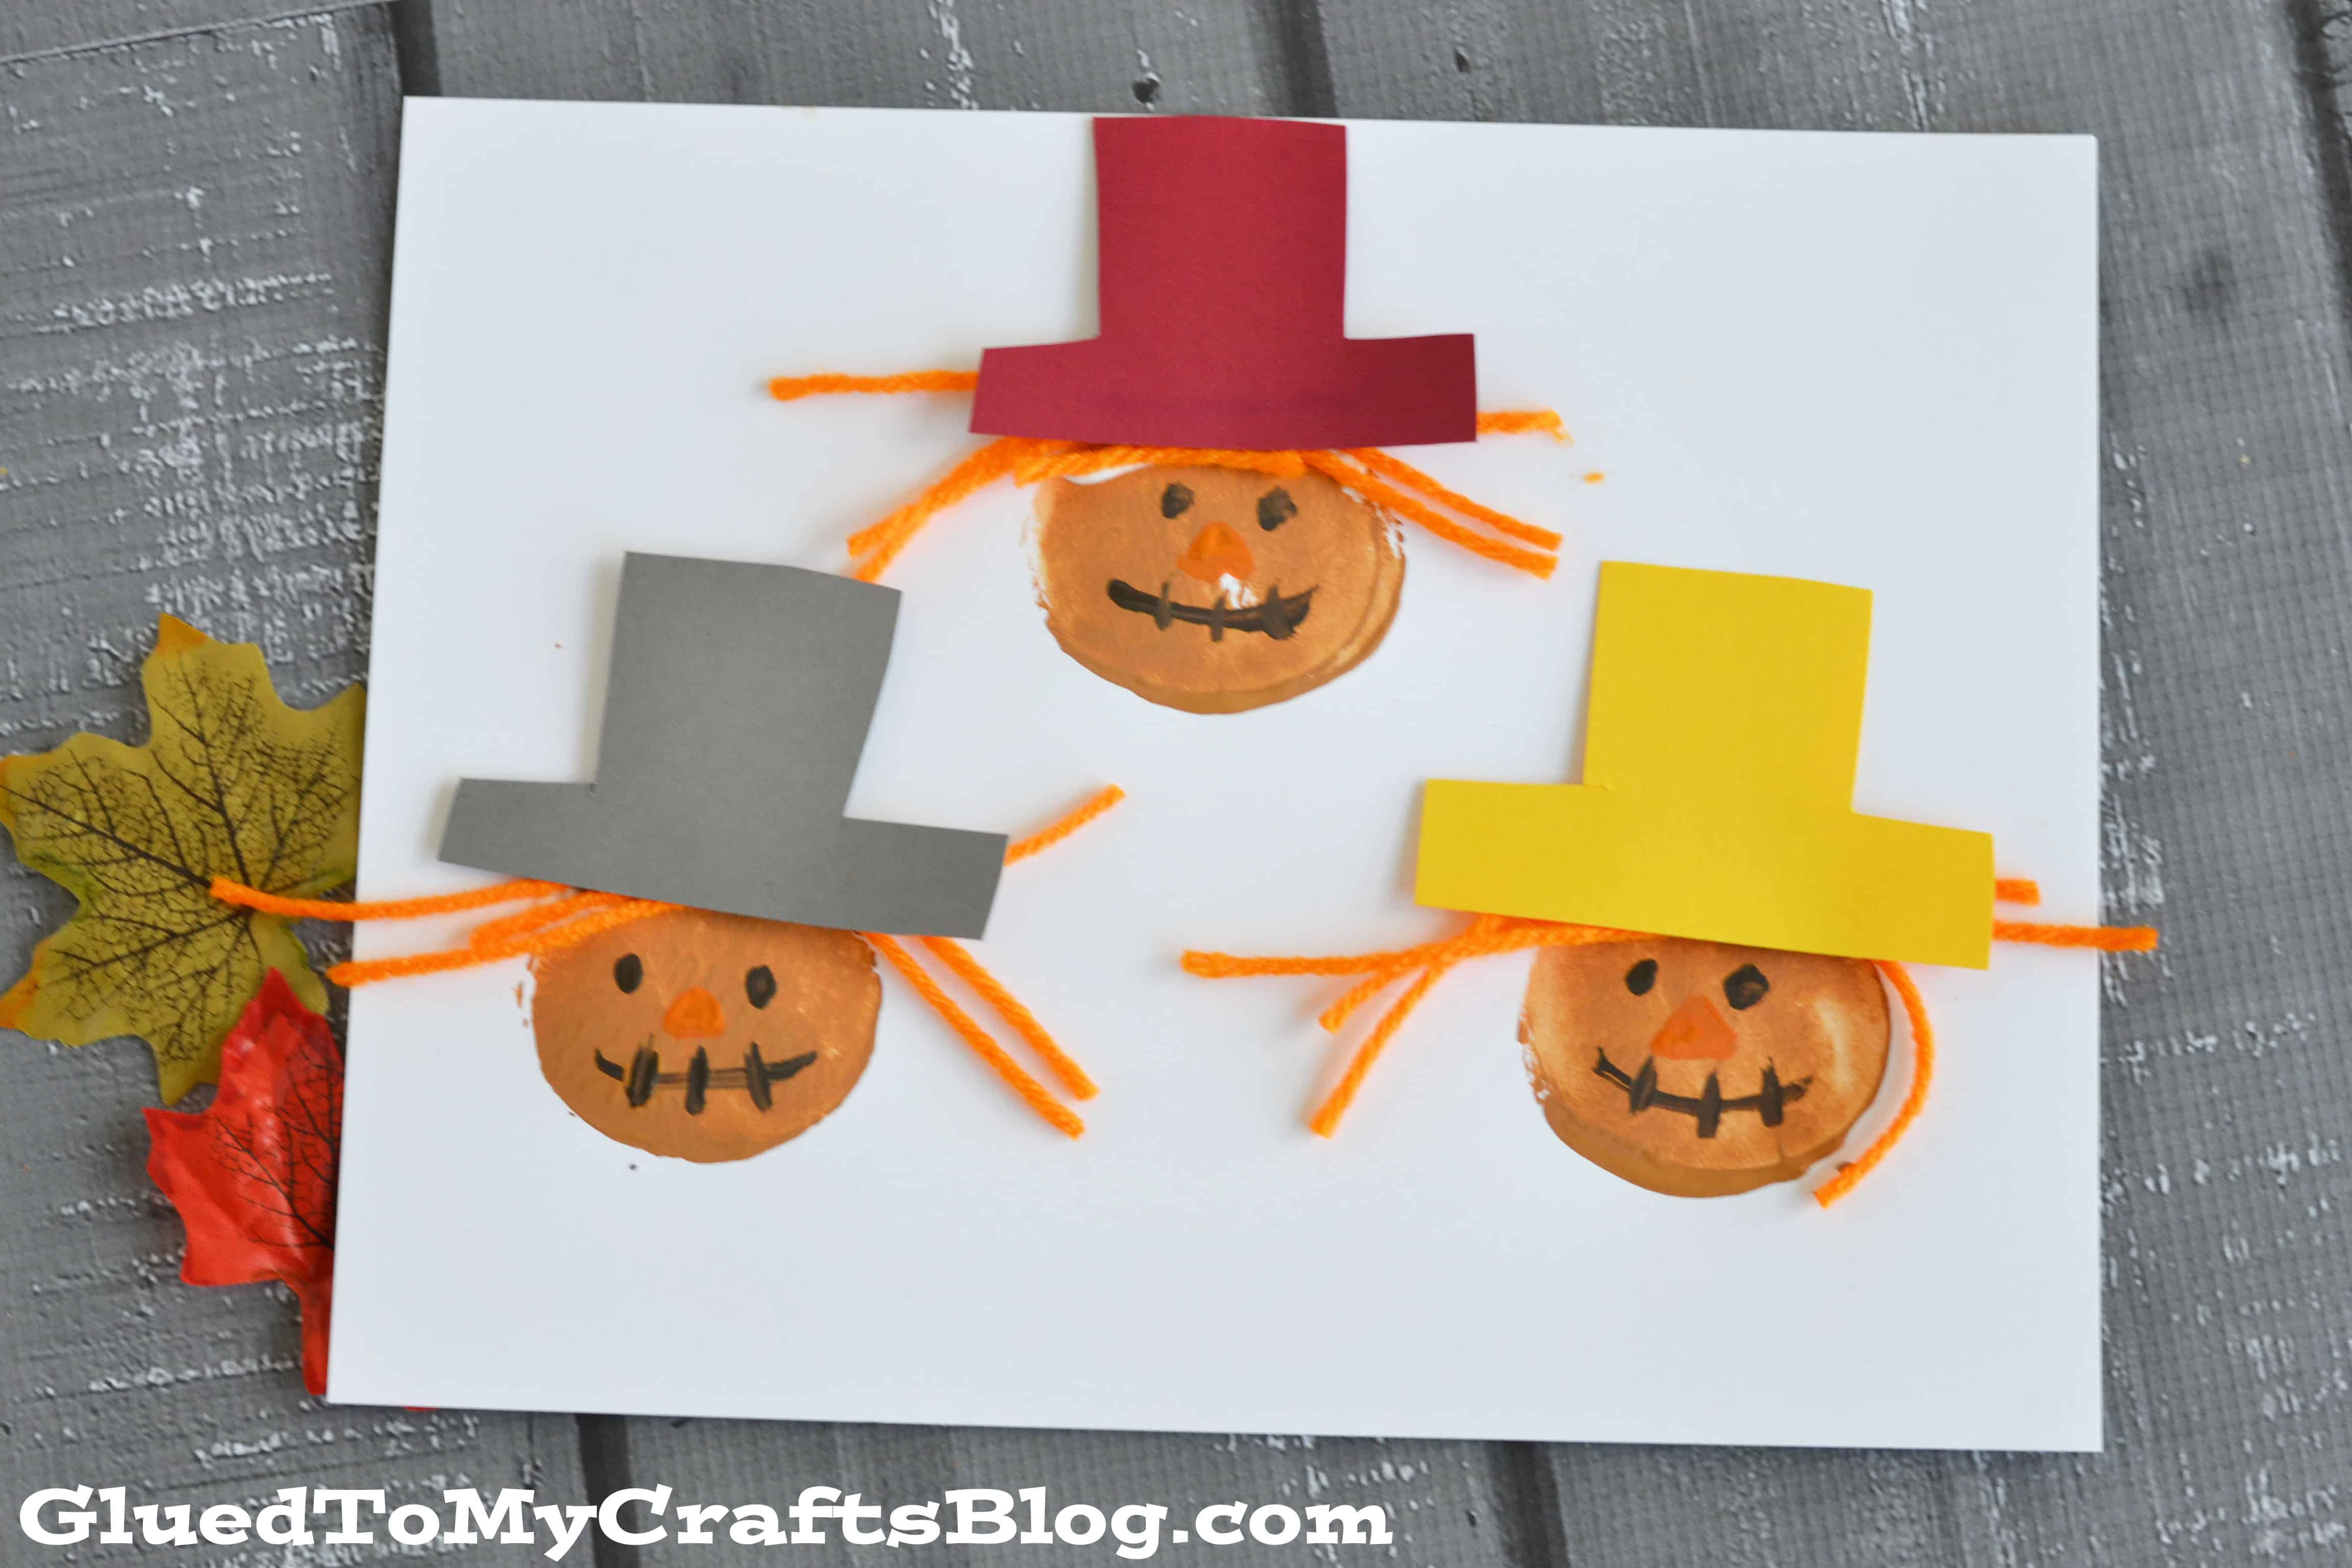 Potato stamp and yarn scarecrows